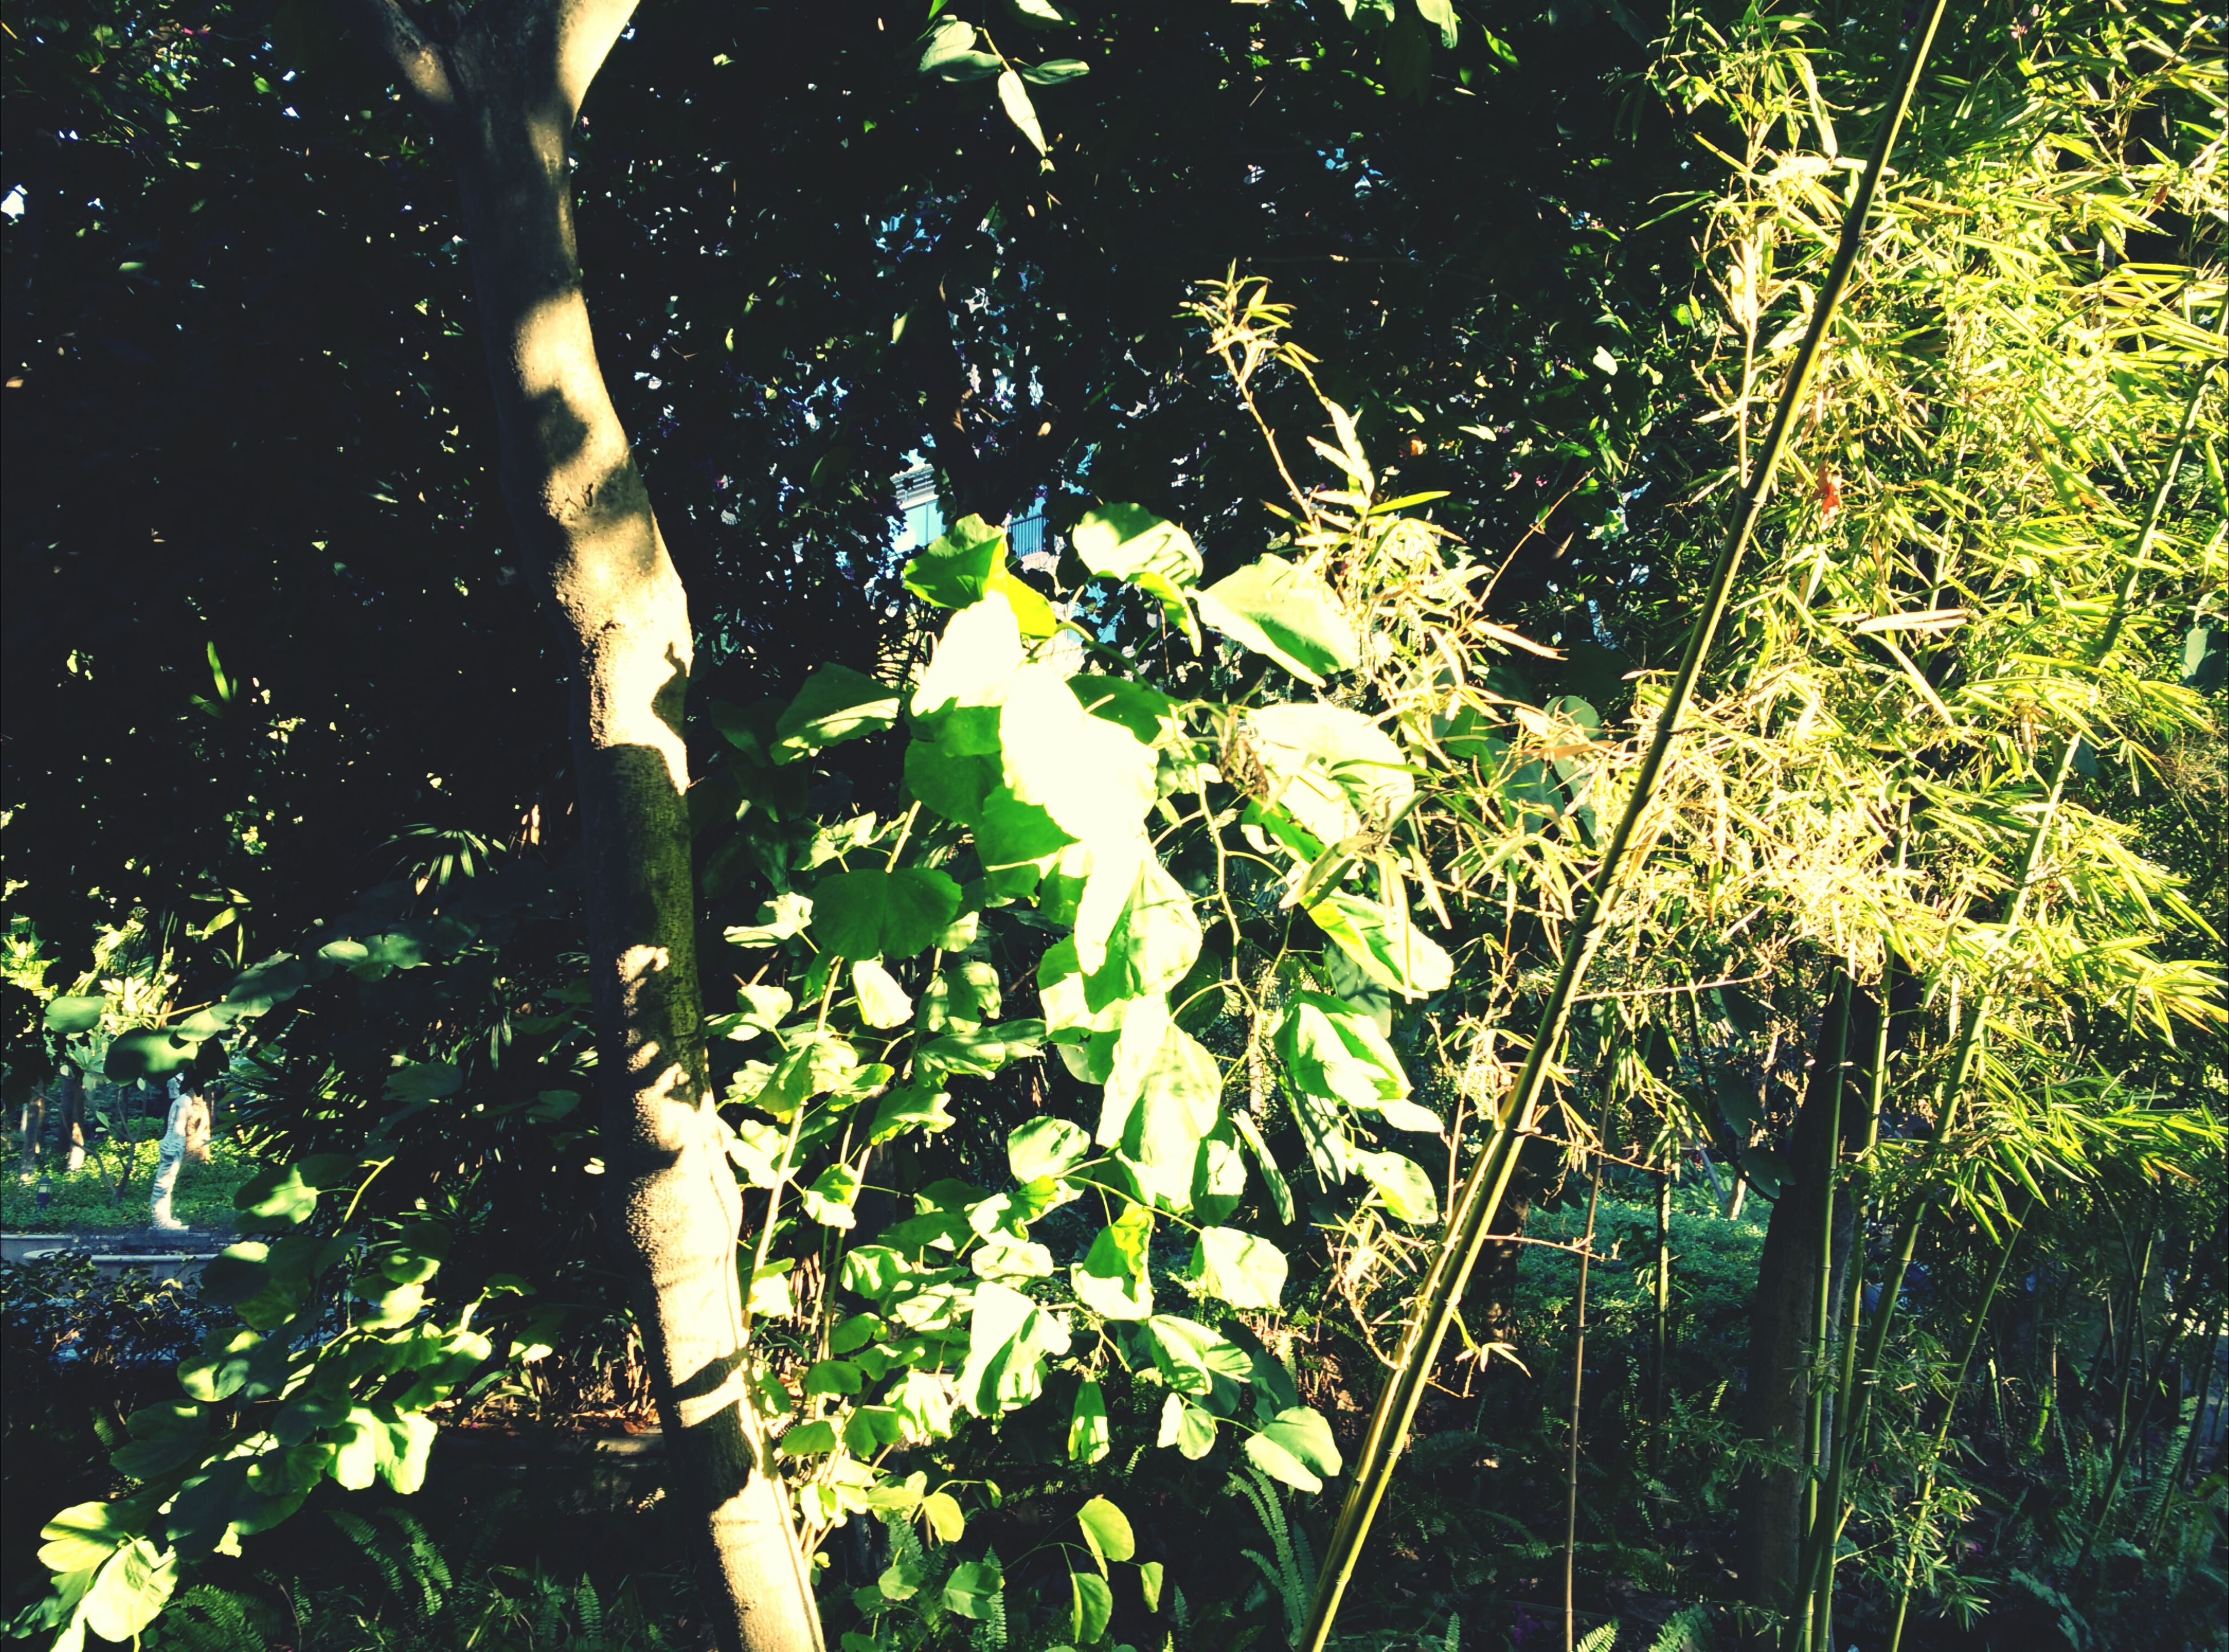 growth, tree, green color, leaf, plant, nature, branch, tree trunk, tranquility, beauty in nature, sunlight, forest, growing, day, green, outdoors, low angle view, lush foliage, freshness, no people